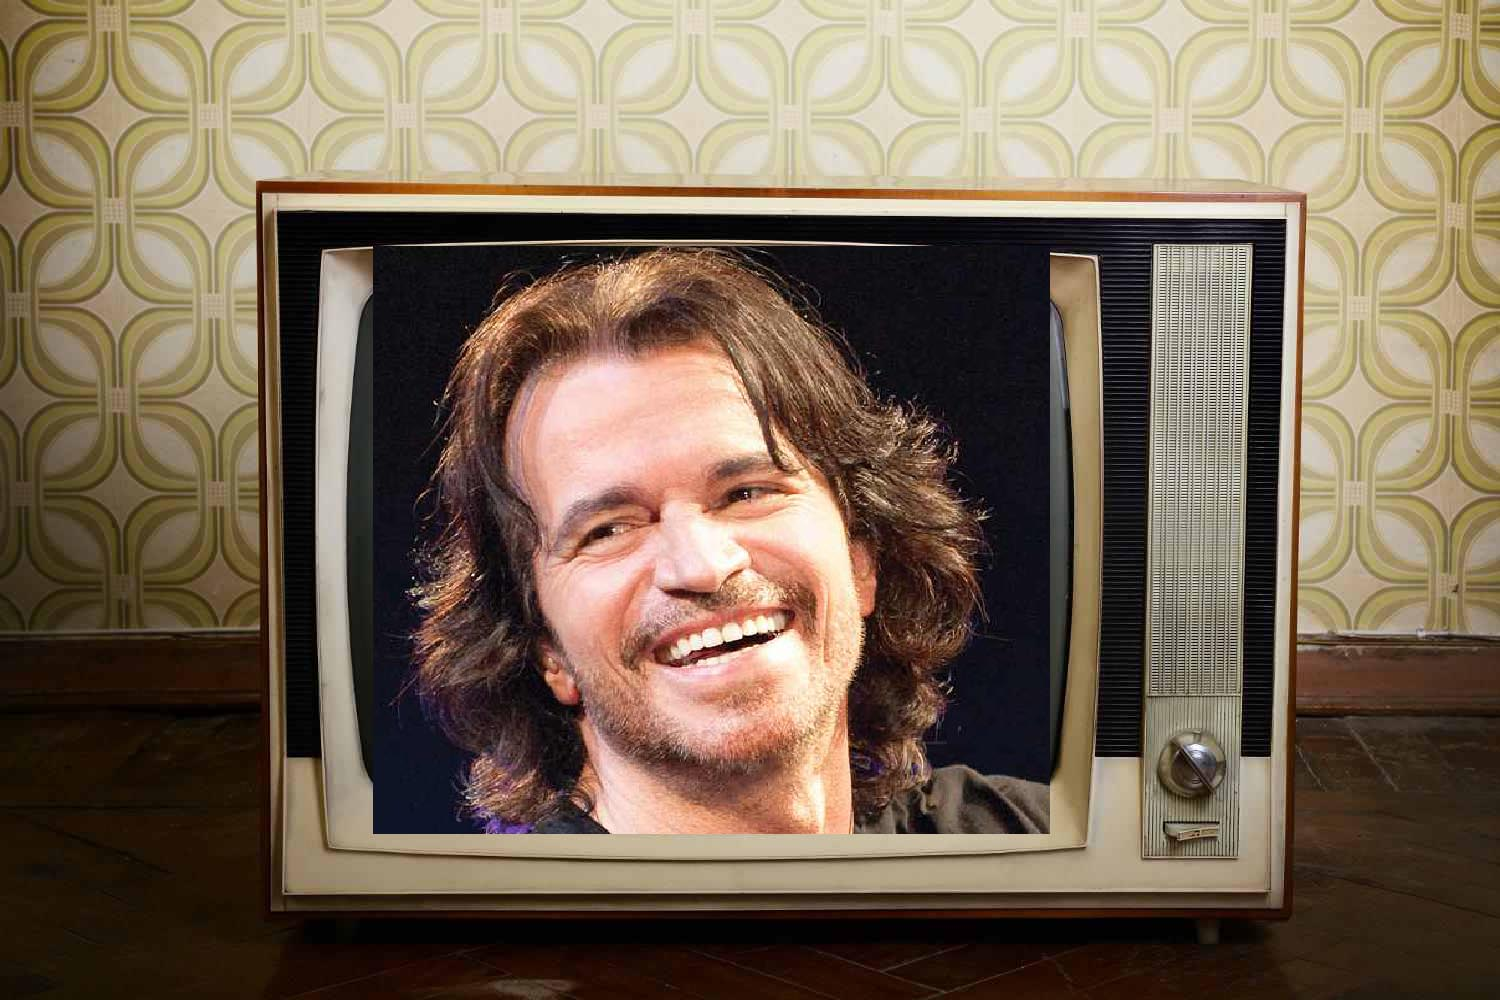 Yanni on tv